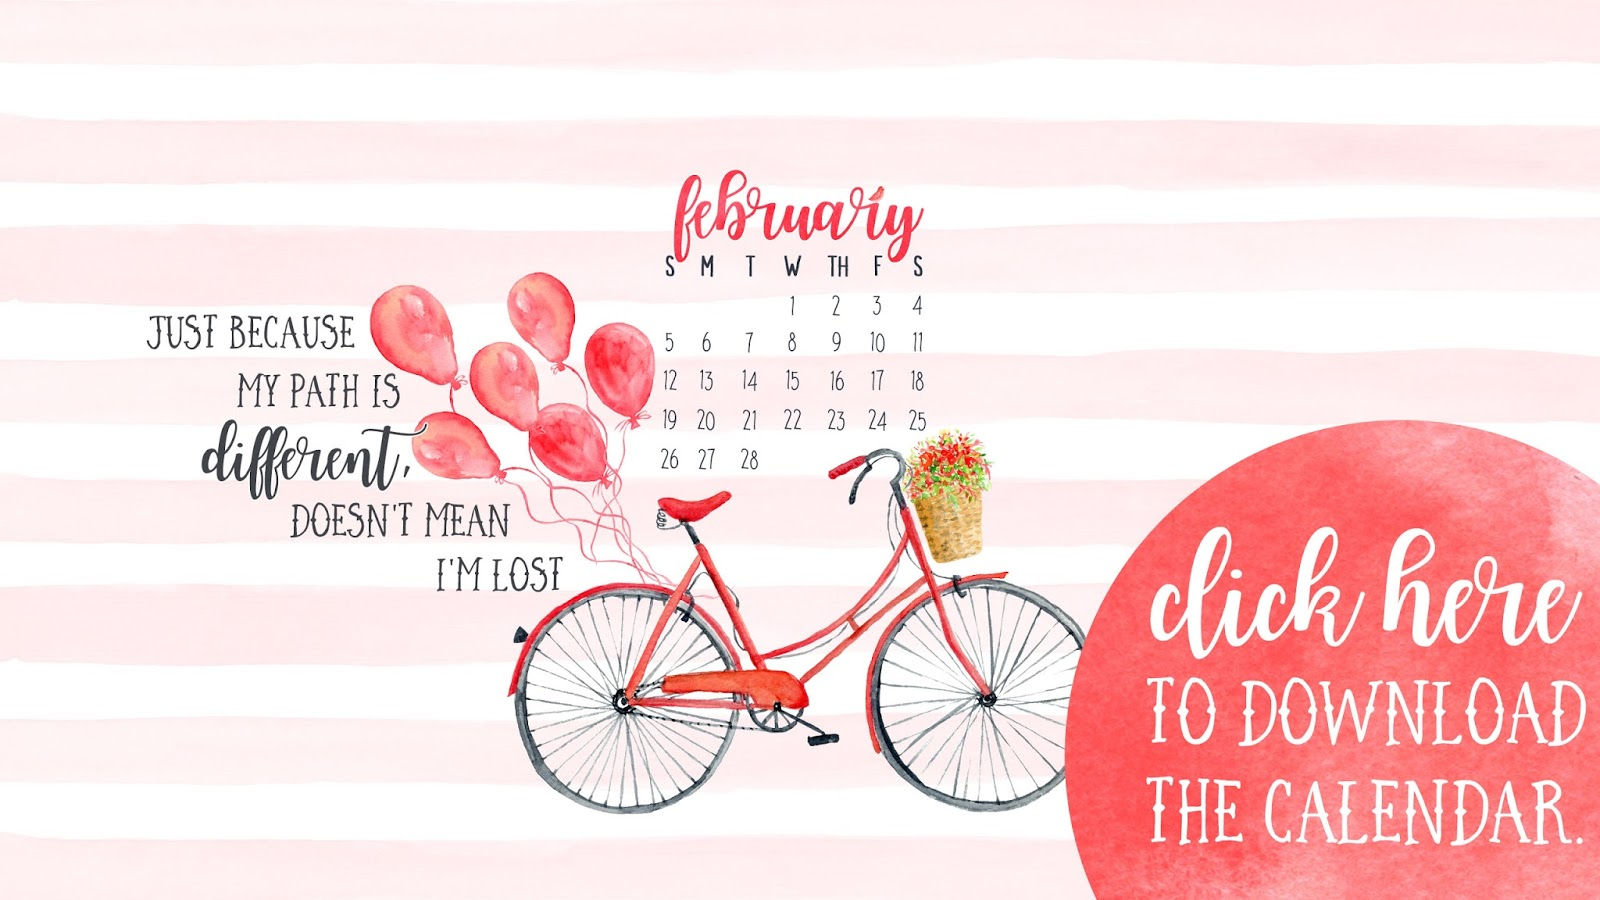 February 2017 Desktop Calendar Free Download • I Teach. What's Your Superpower?